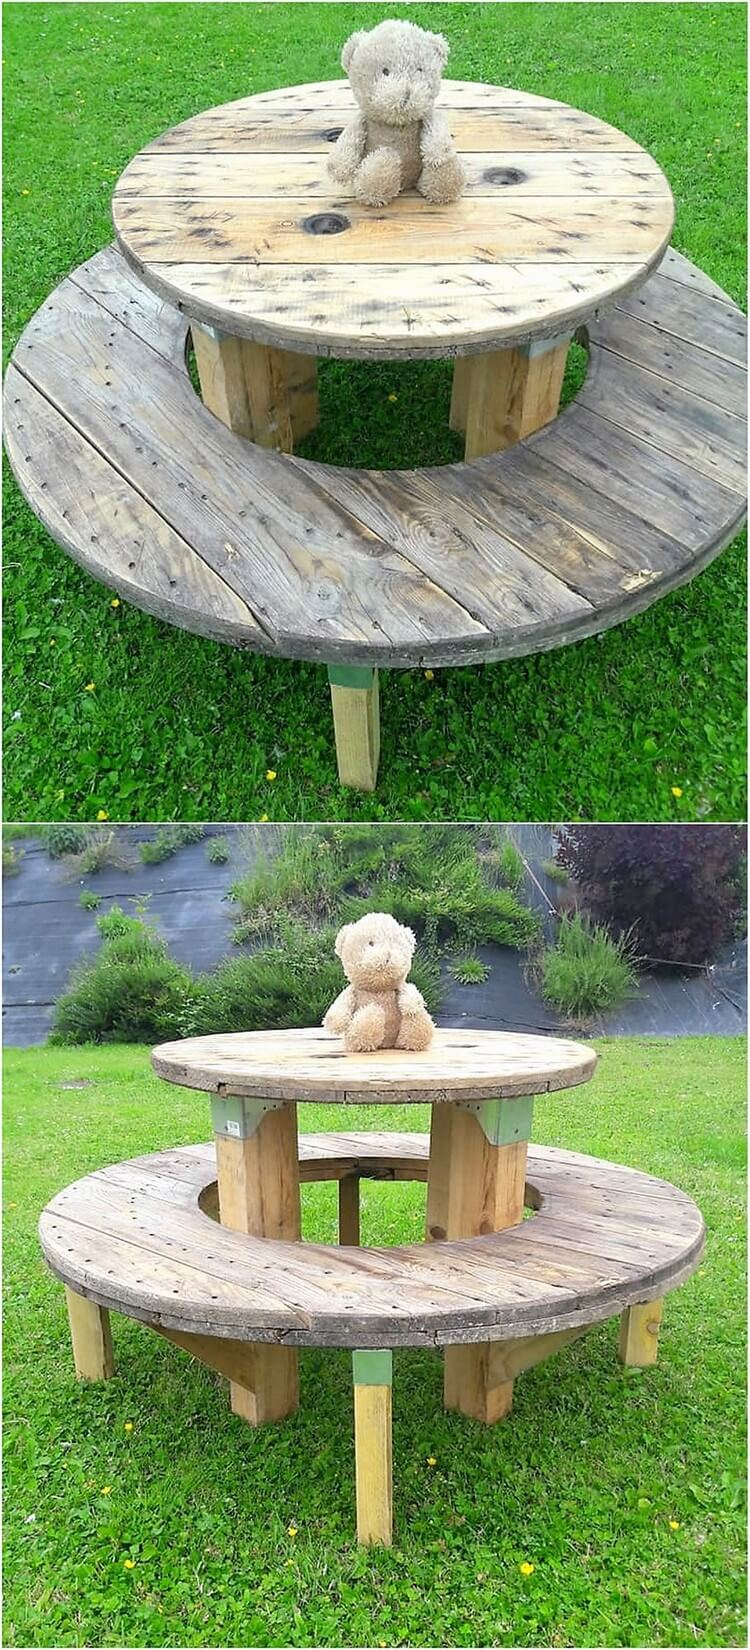 Round Top Table with Bench